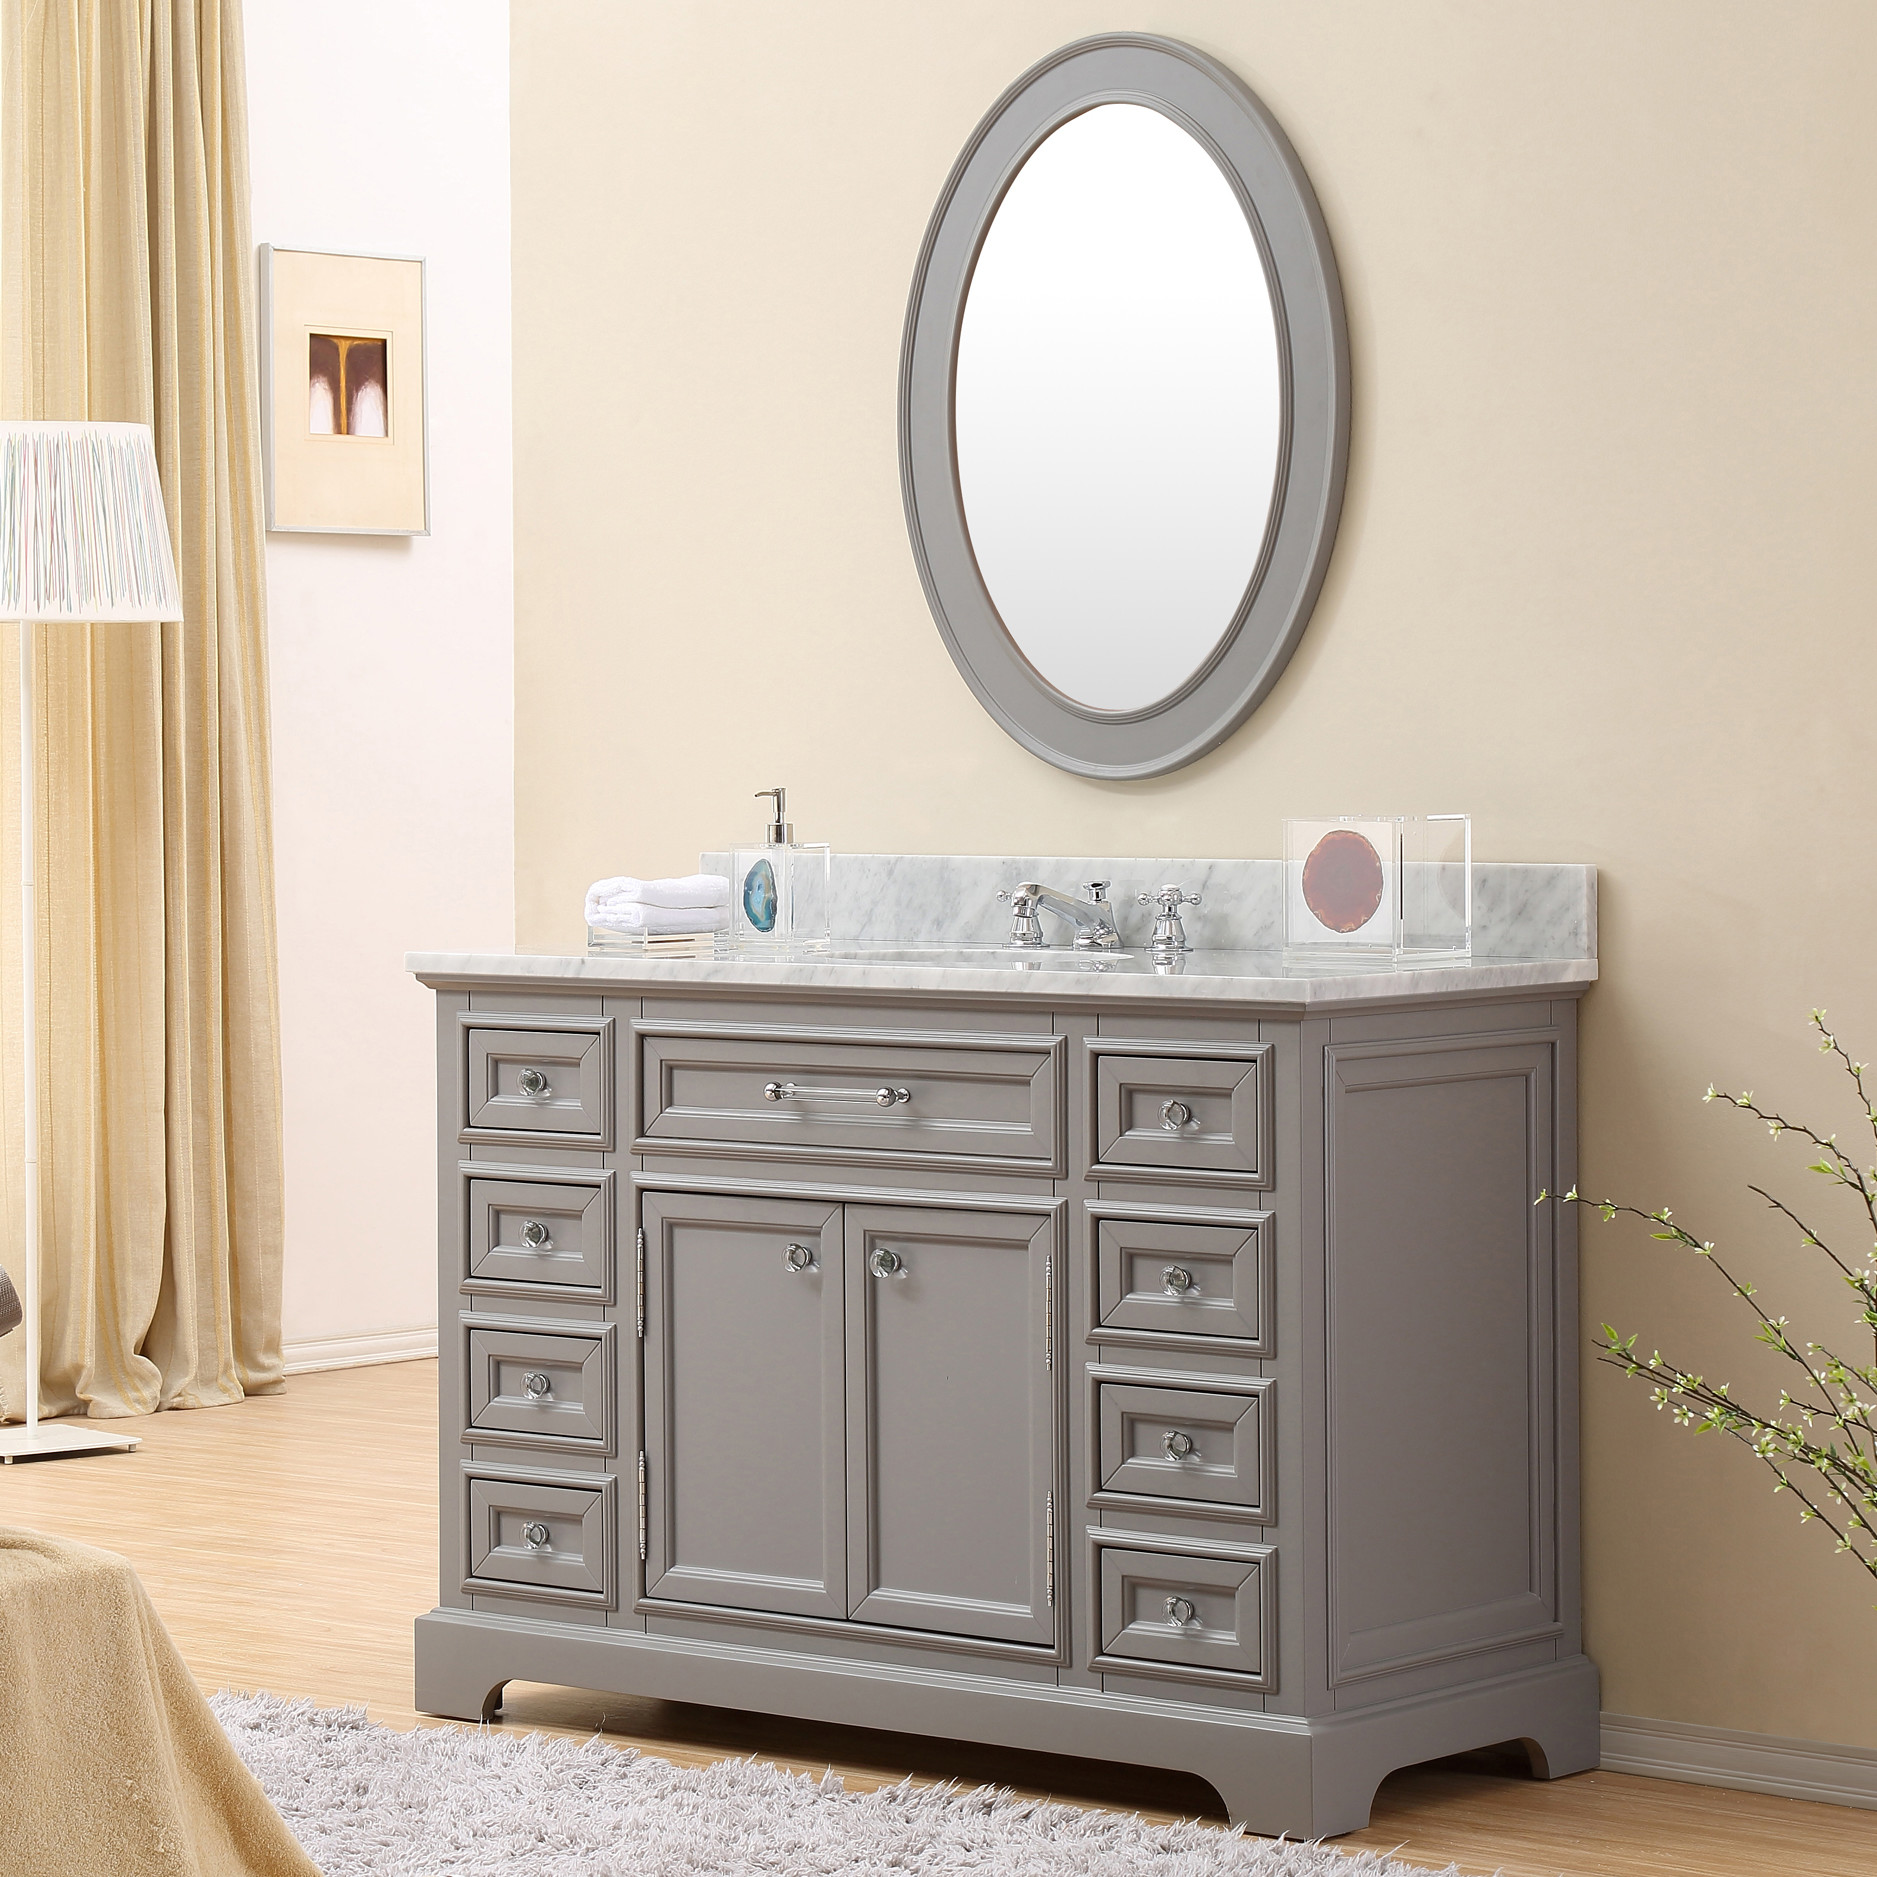 Carenton Inch Traditional Bathroom Vanity Gray Finish - 48 gray bathroom vanity